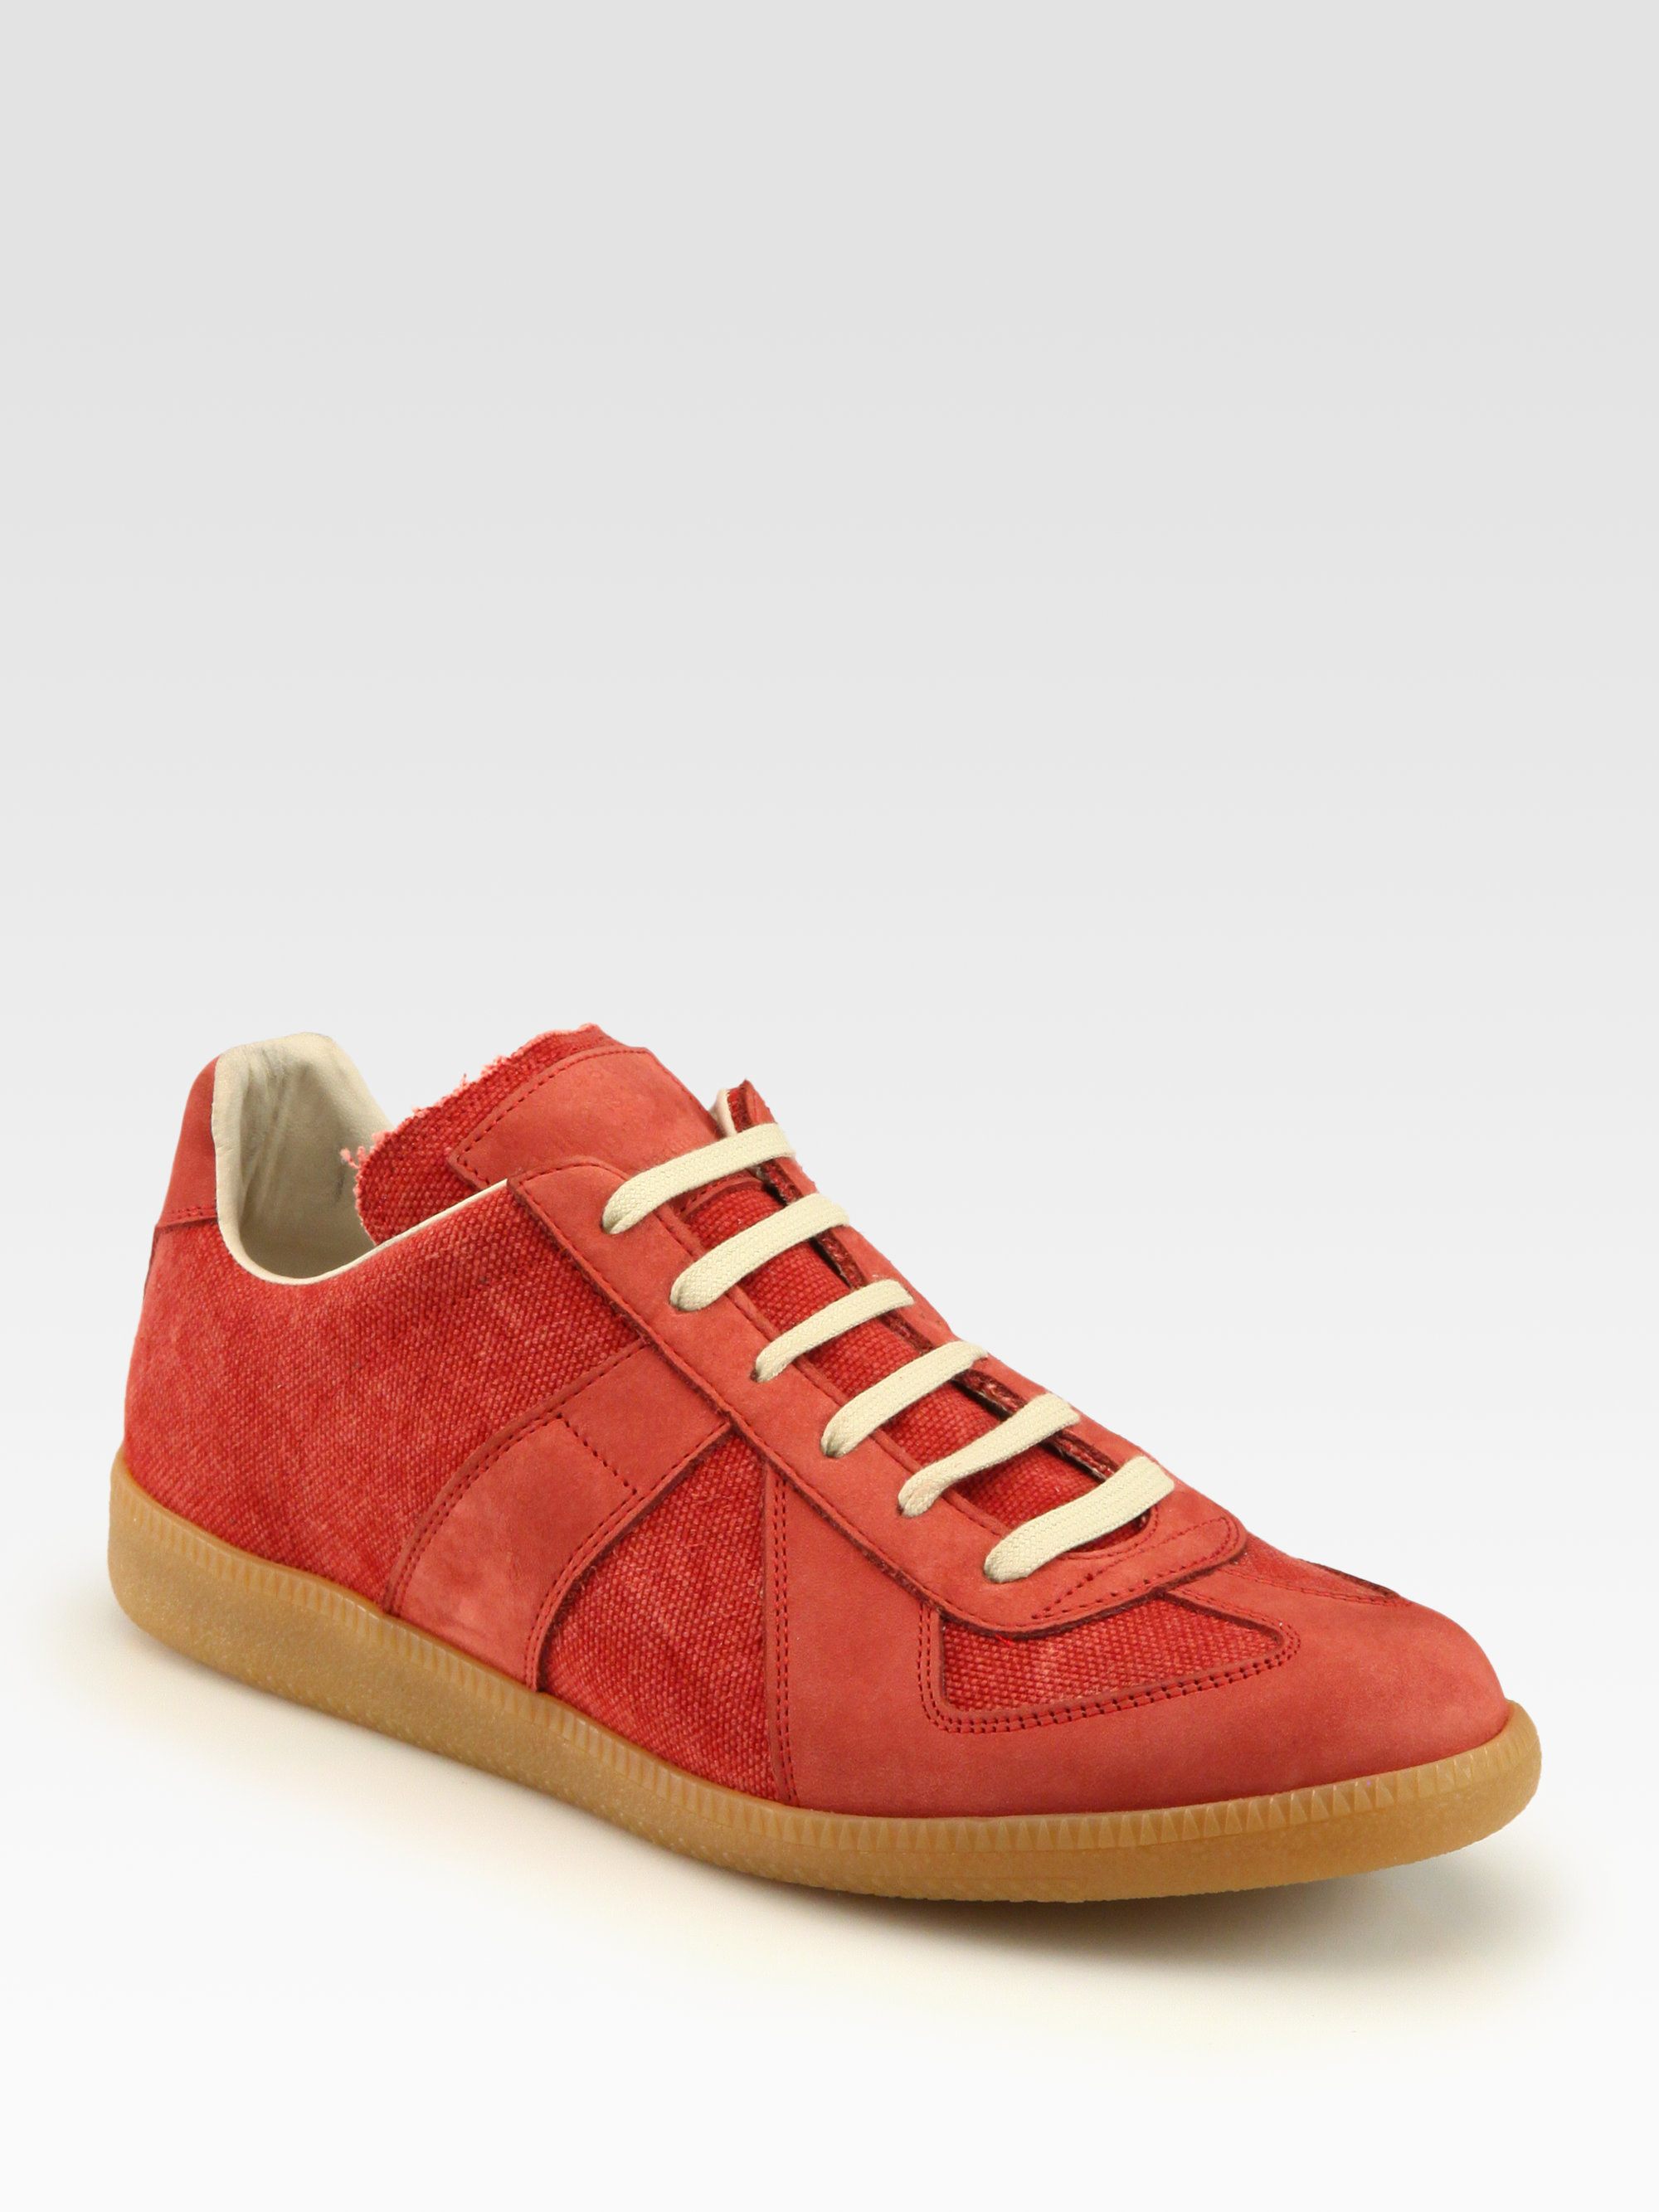 Maison martin margiela replica canvas laceup sneakers in for Replica maison martin margiela